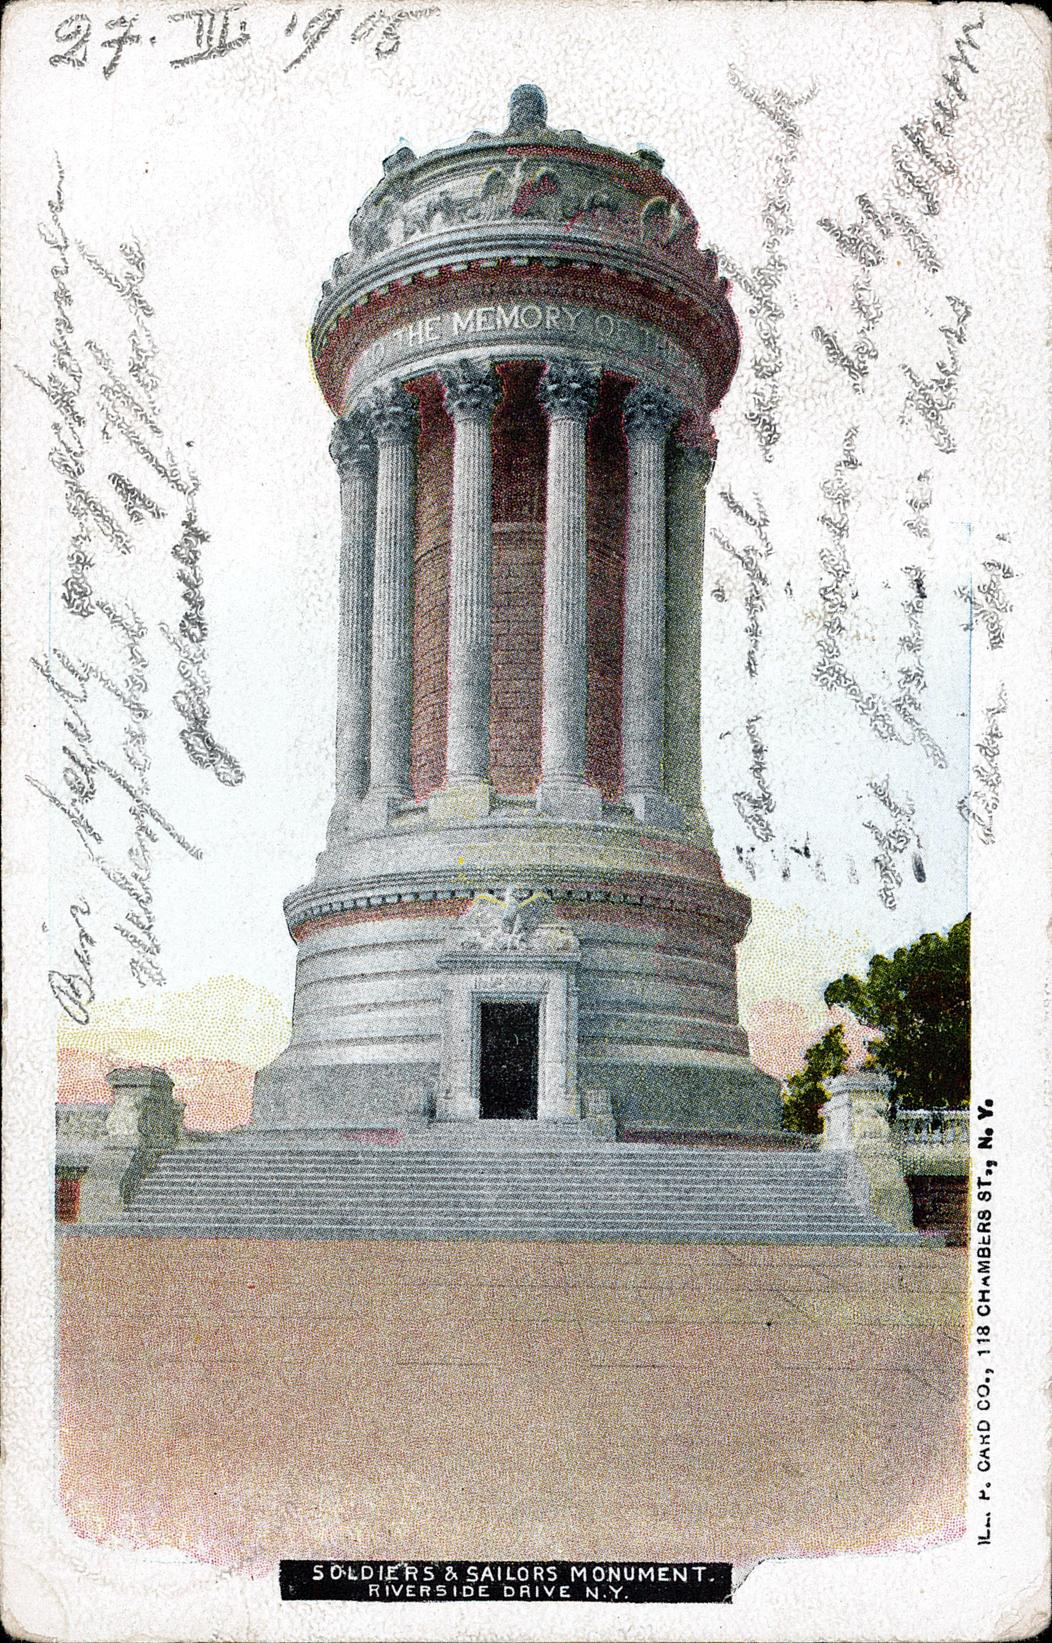 Soldiers & Sailors Monument, Riverside Drive, N. Y. Undivided back